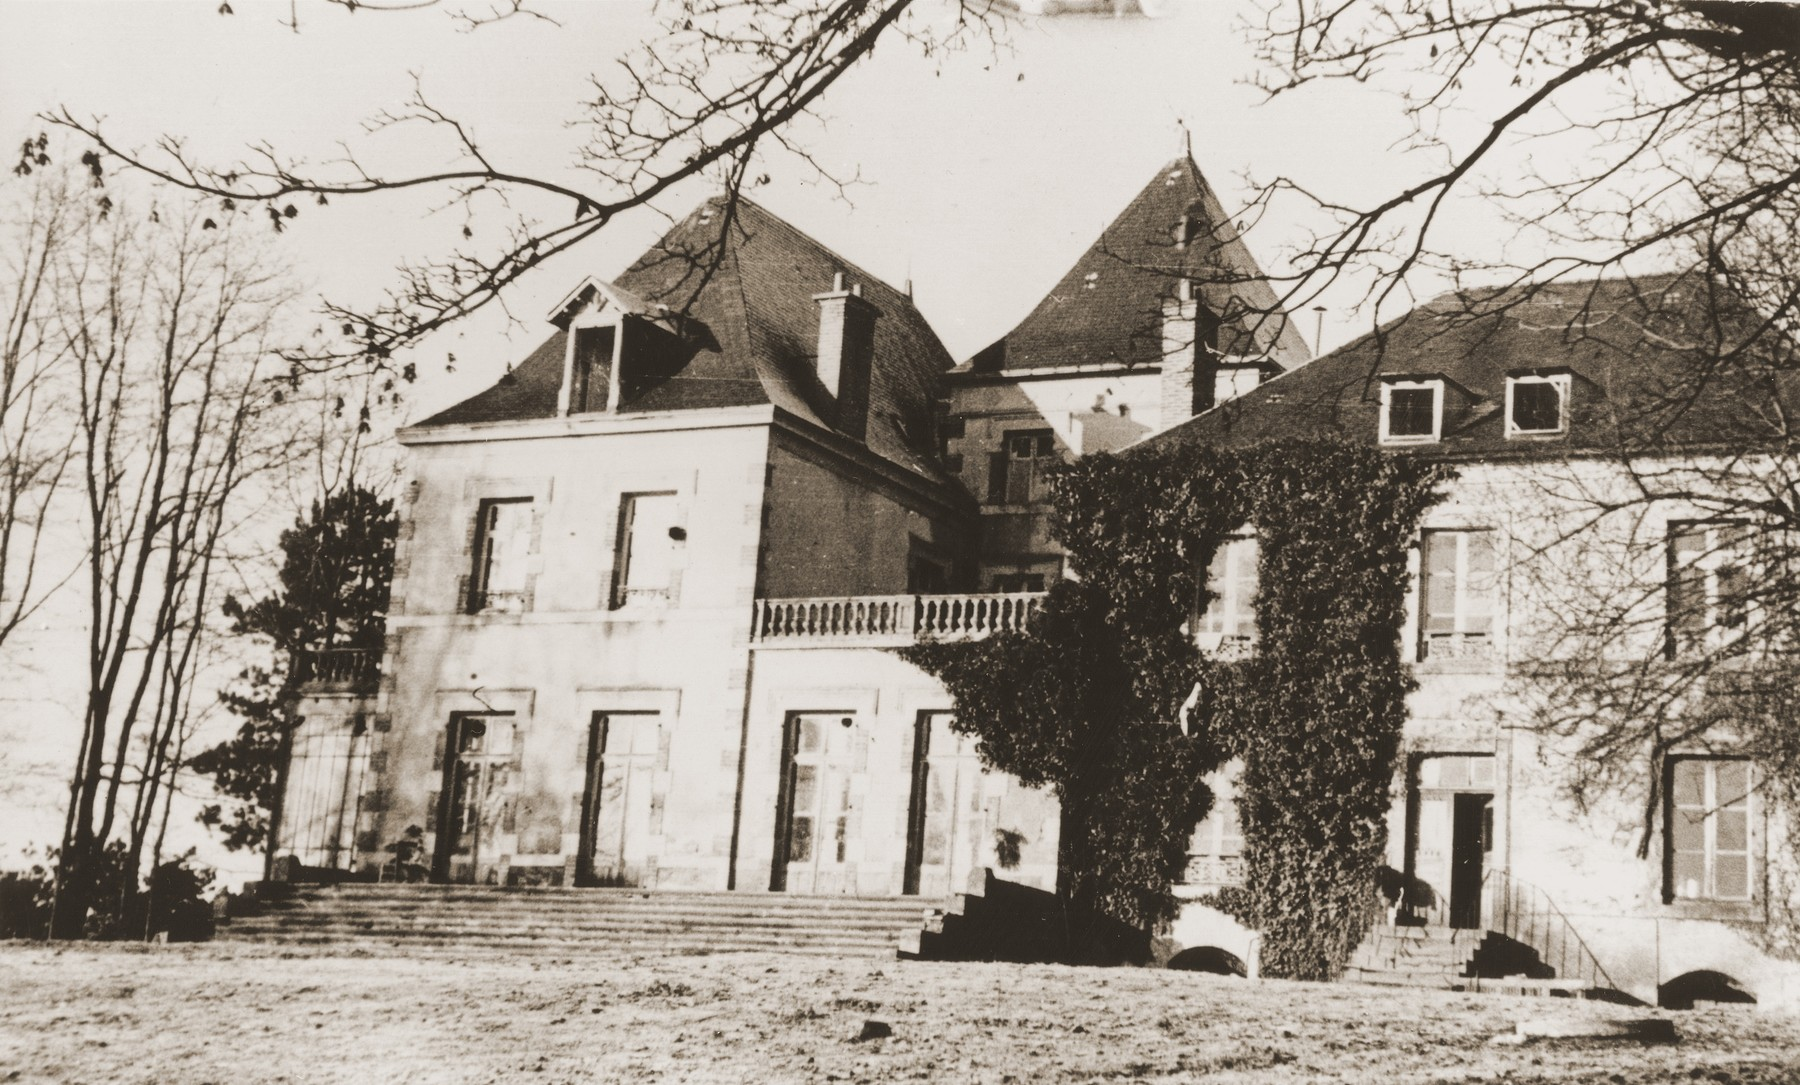 View of the Château de Chabannes OSE children's home near Limoges.